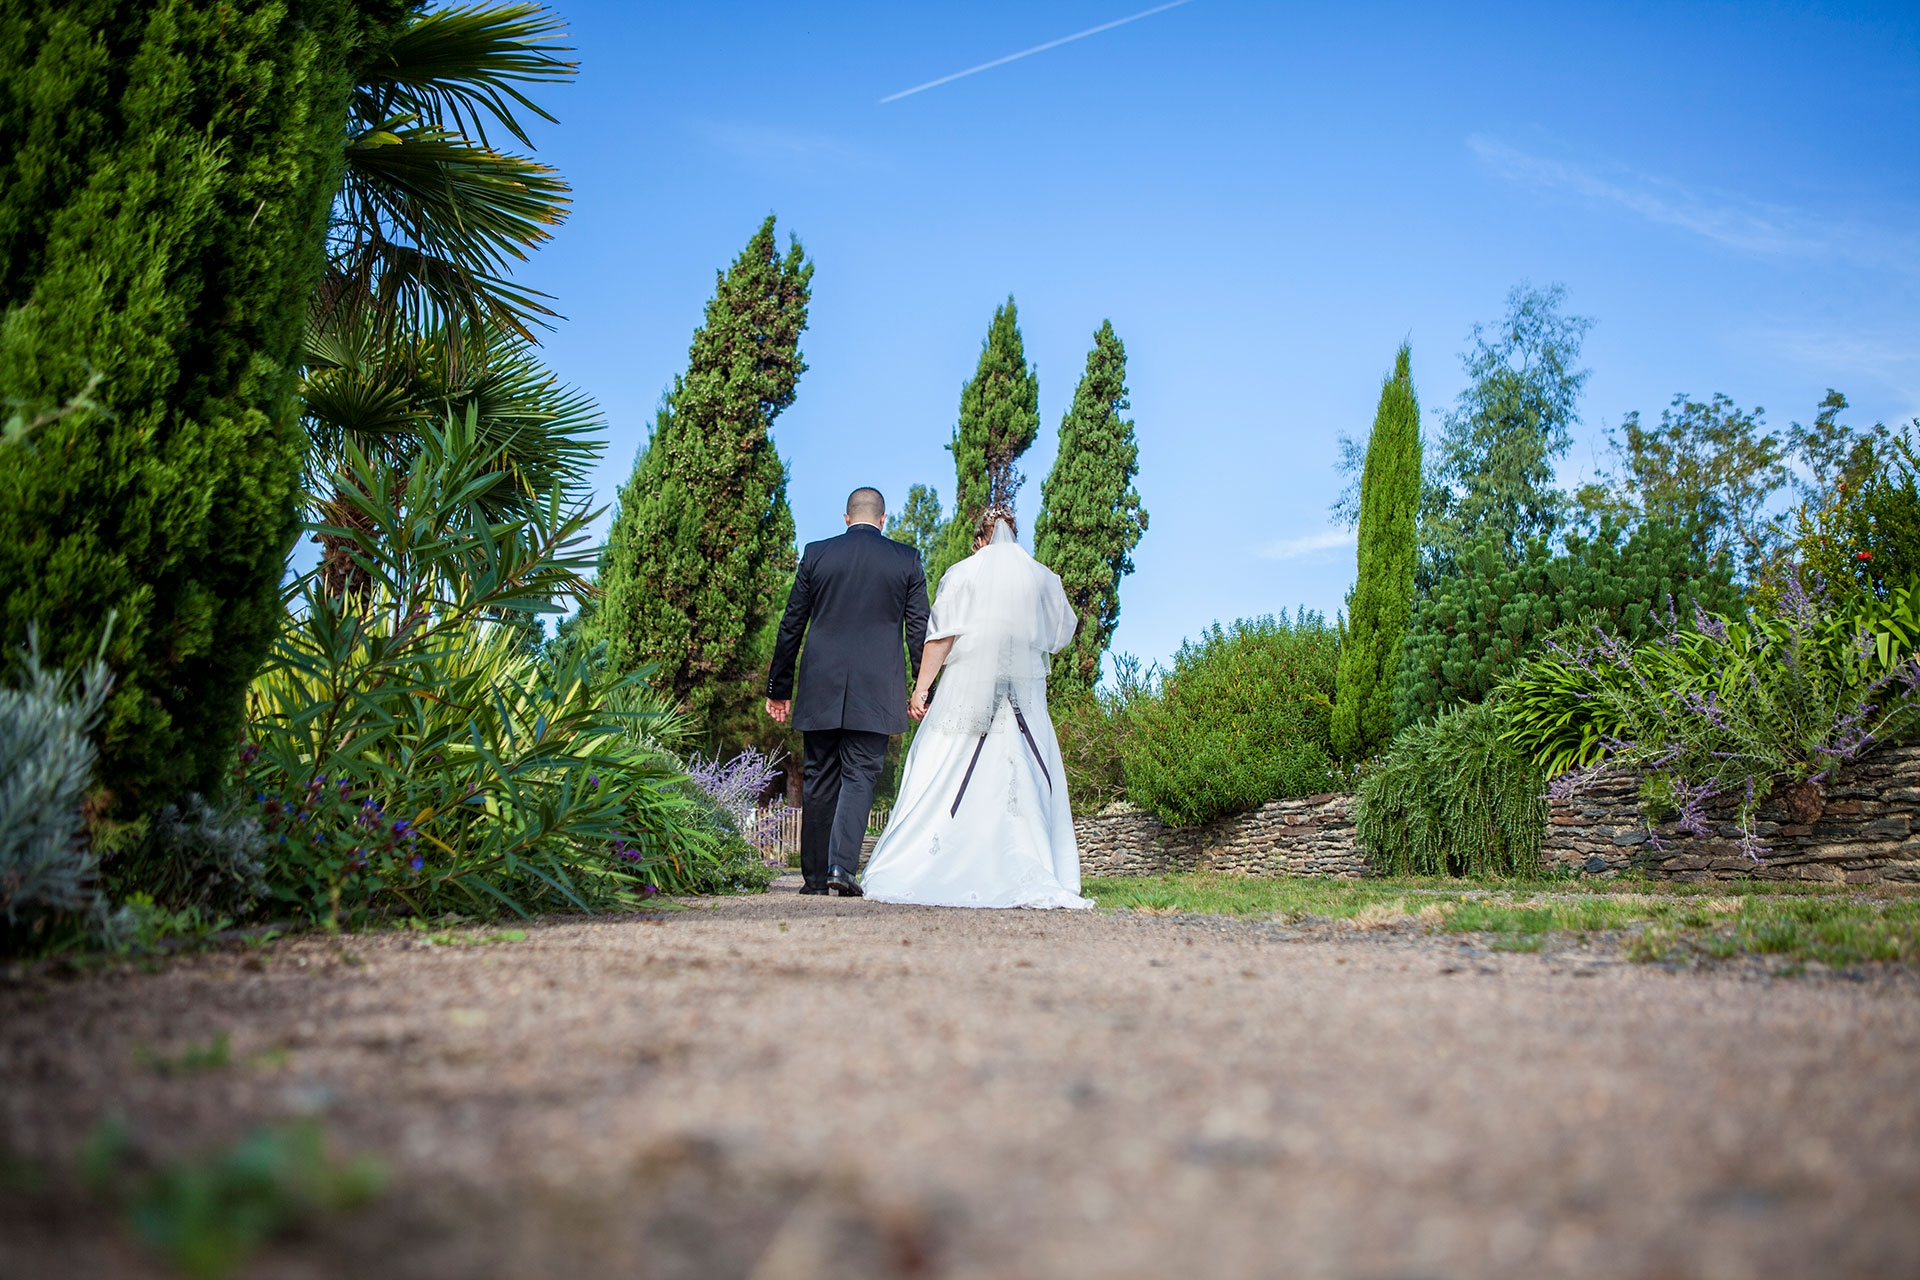 particuliers-evenements-mariages-oui-elodie&wilson-26